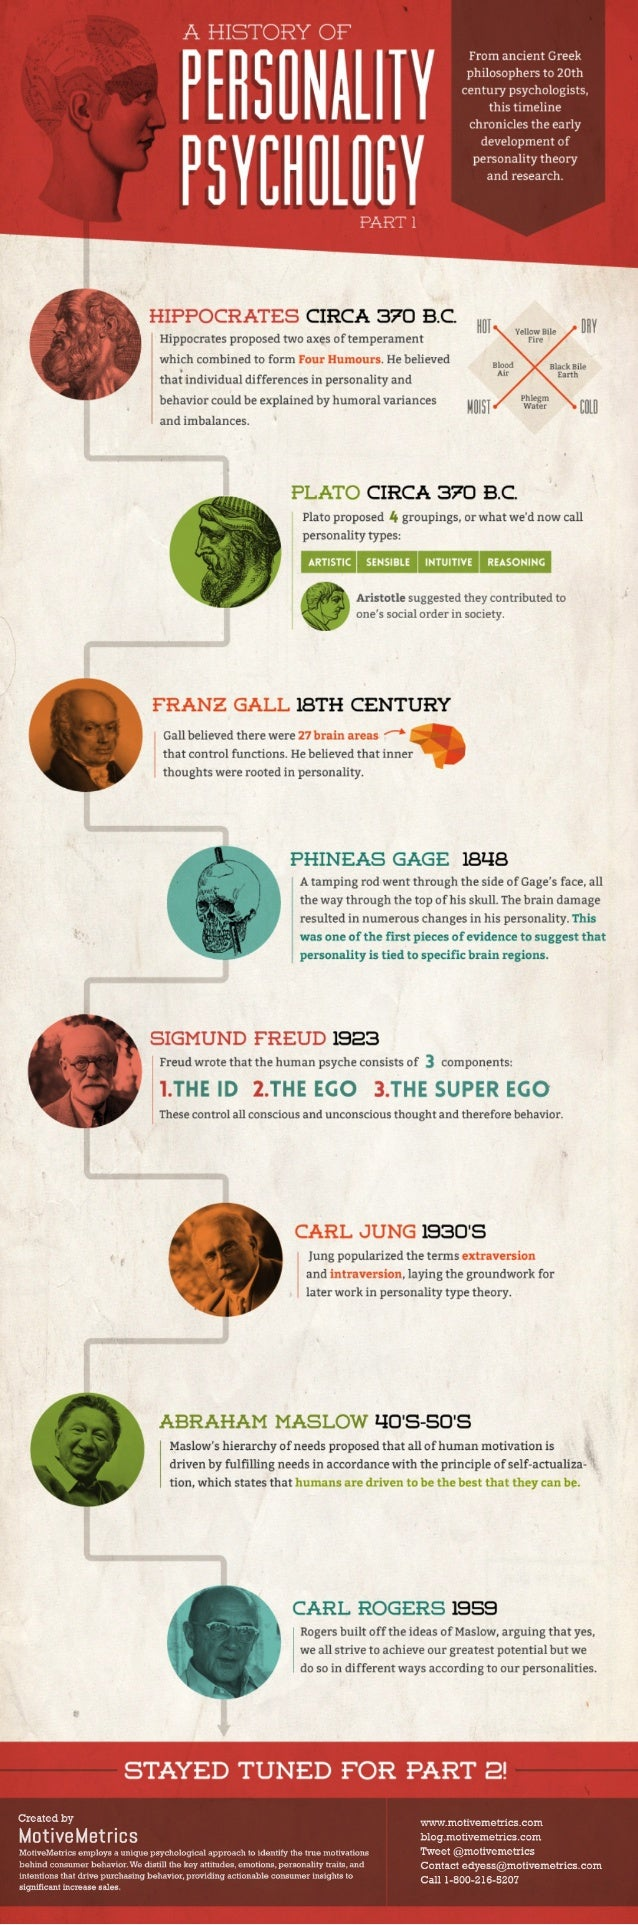 A History of Personality Psychology (Part 1)